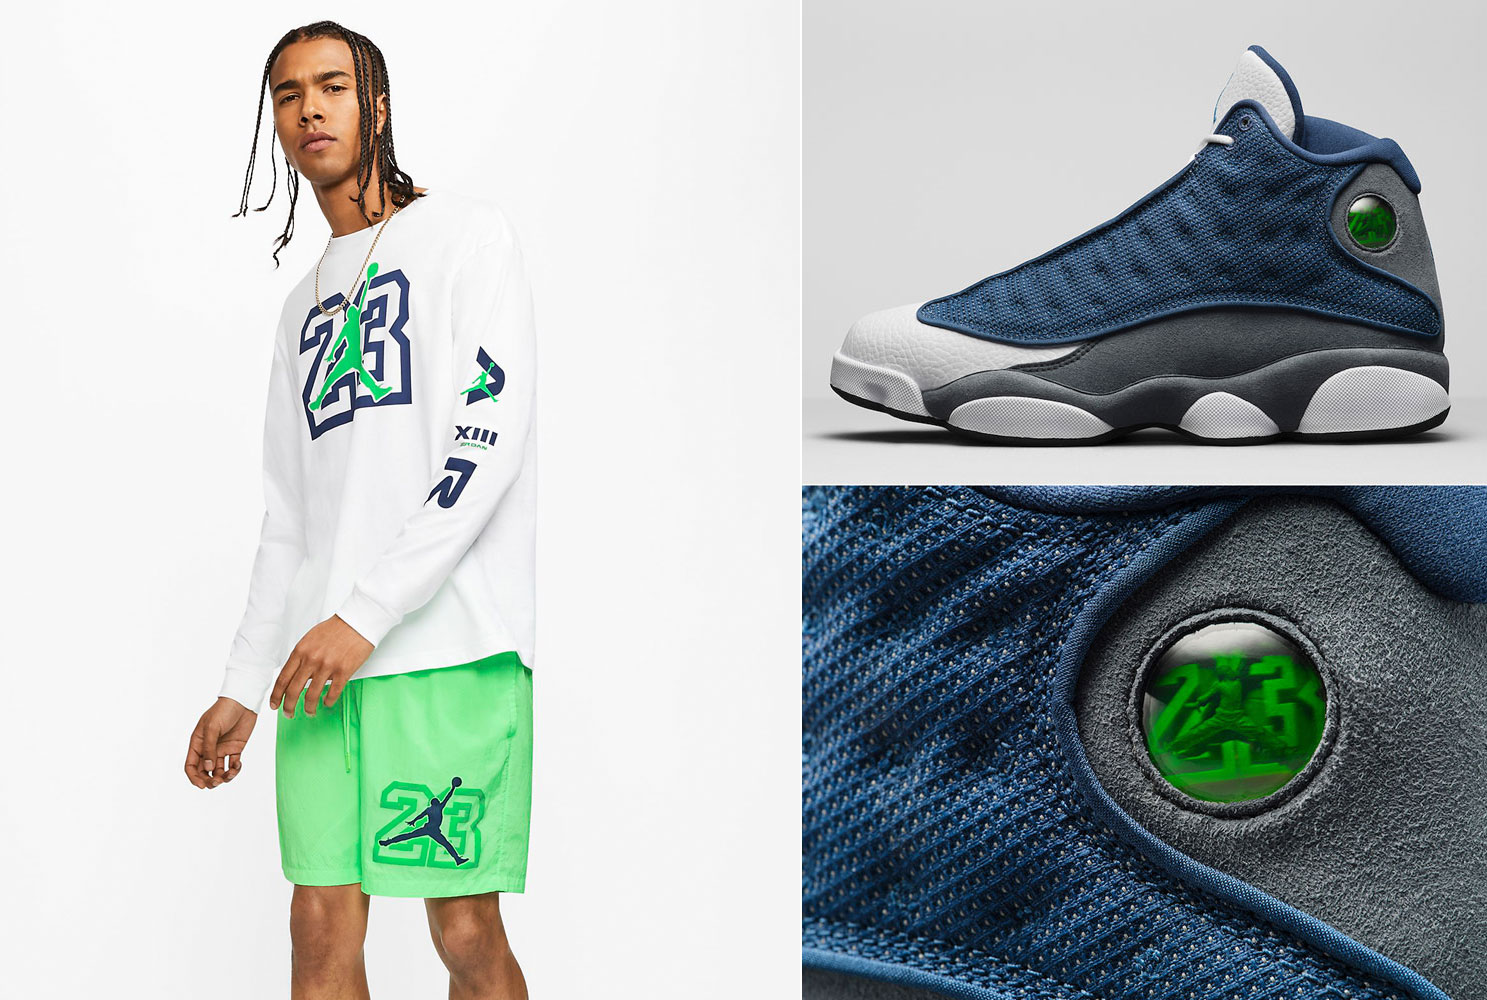 Air Jordan 13 Flint Sneaker Outfits Sneakerfits Com